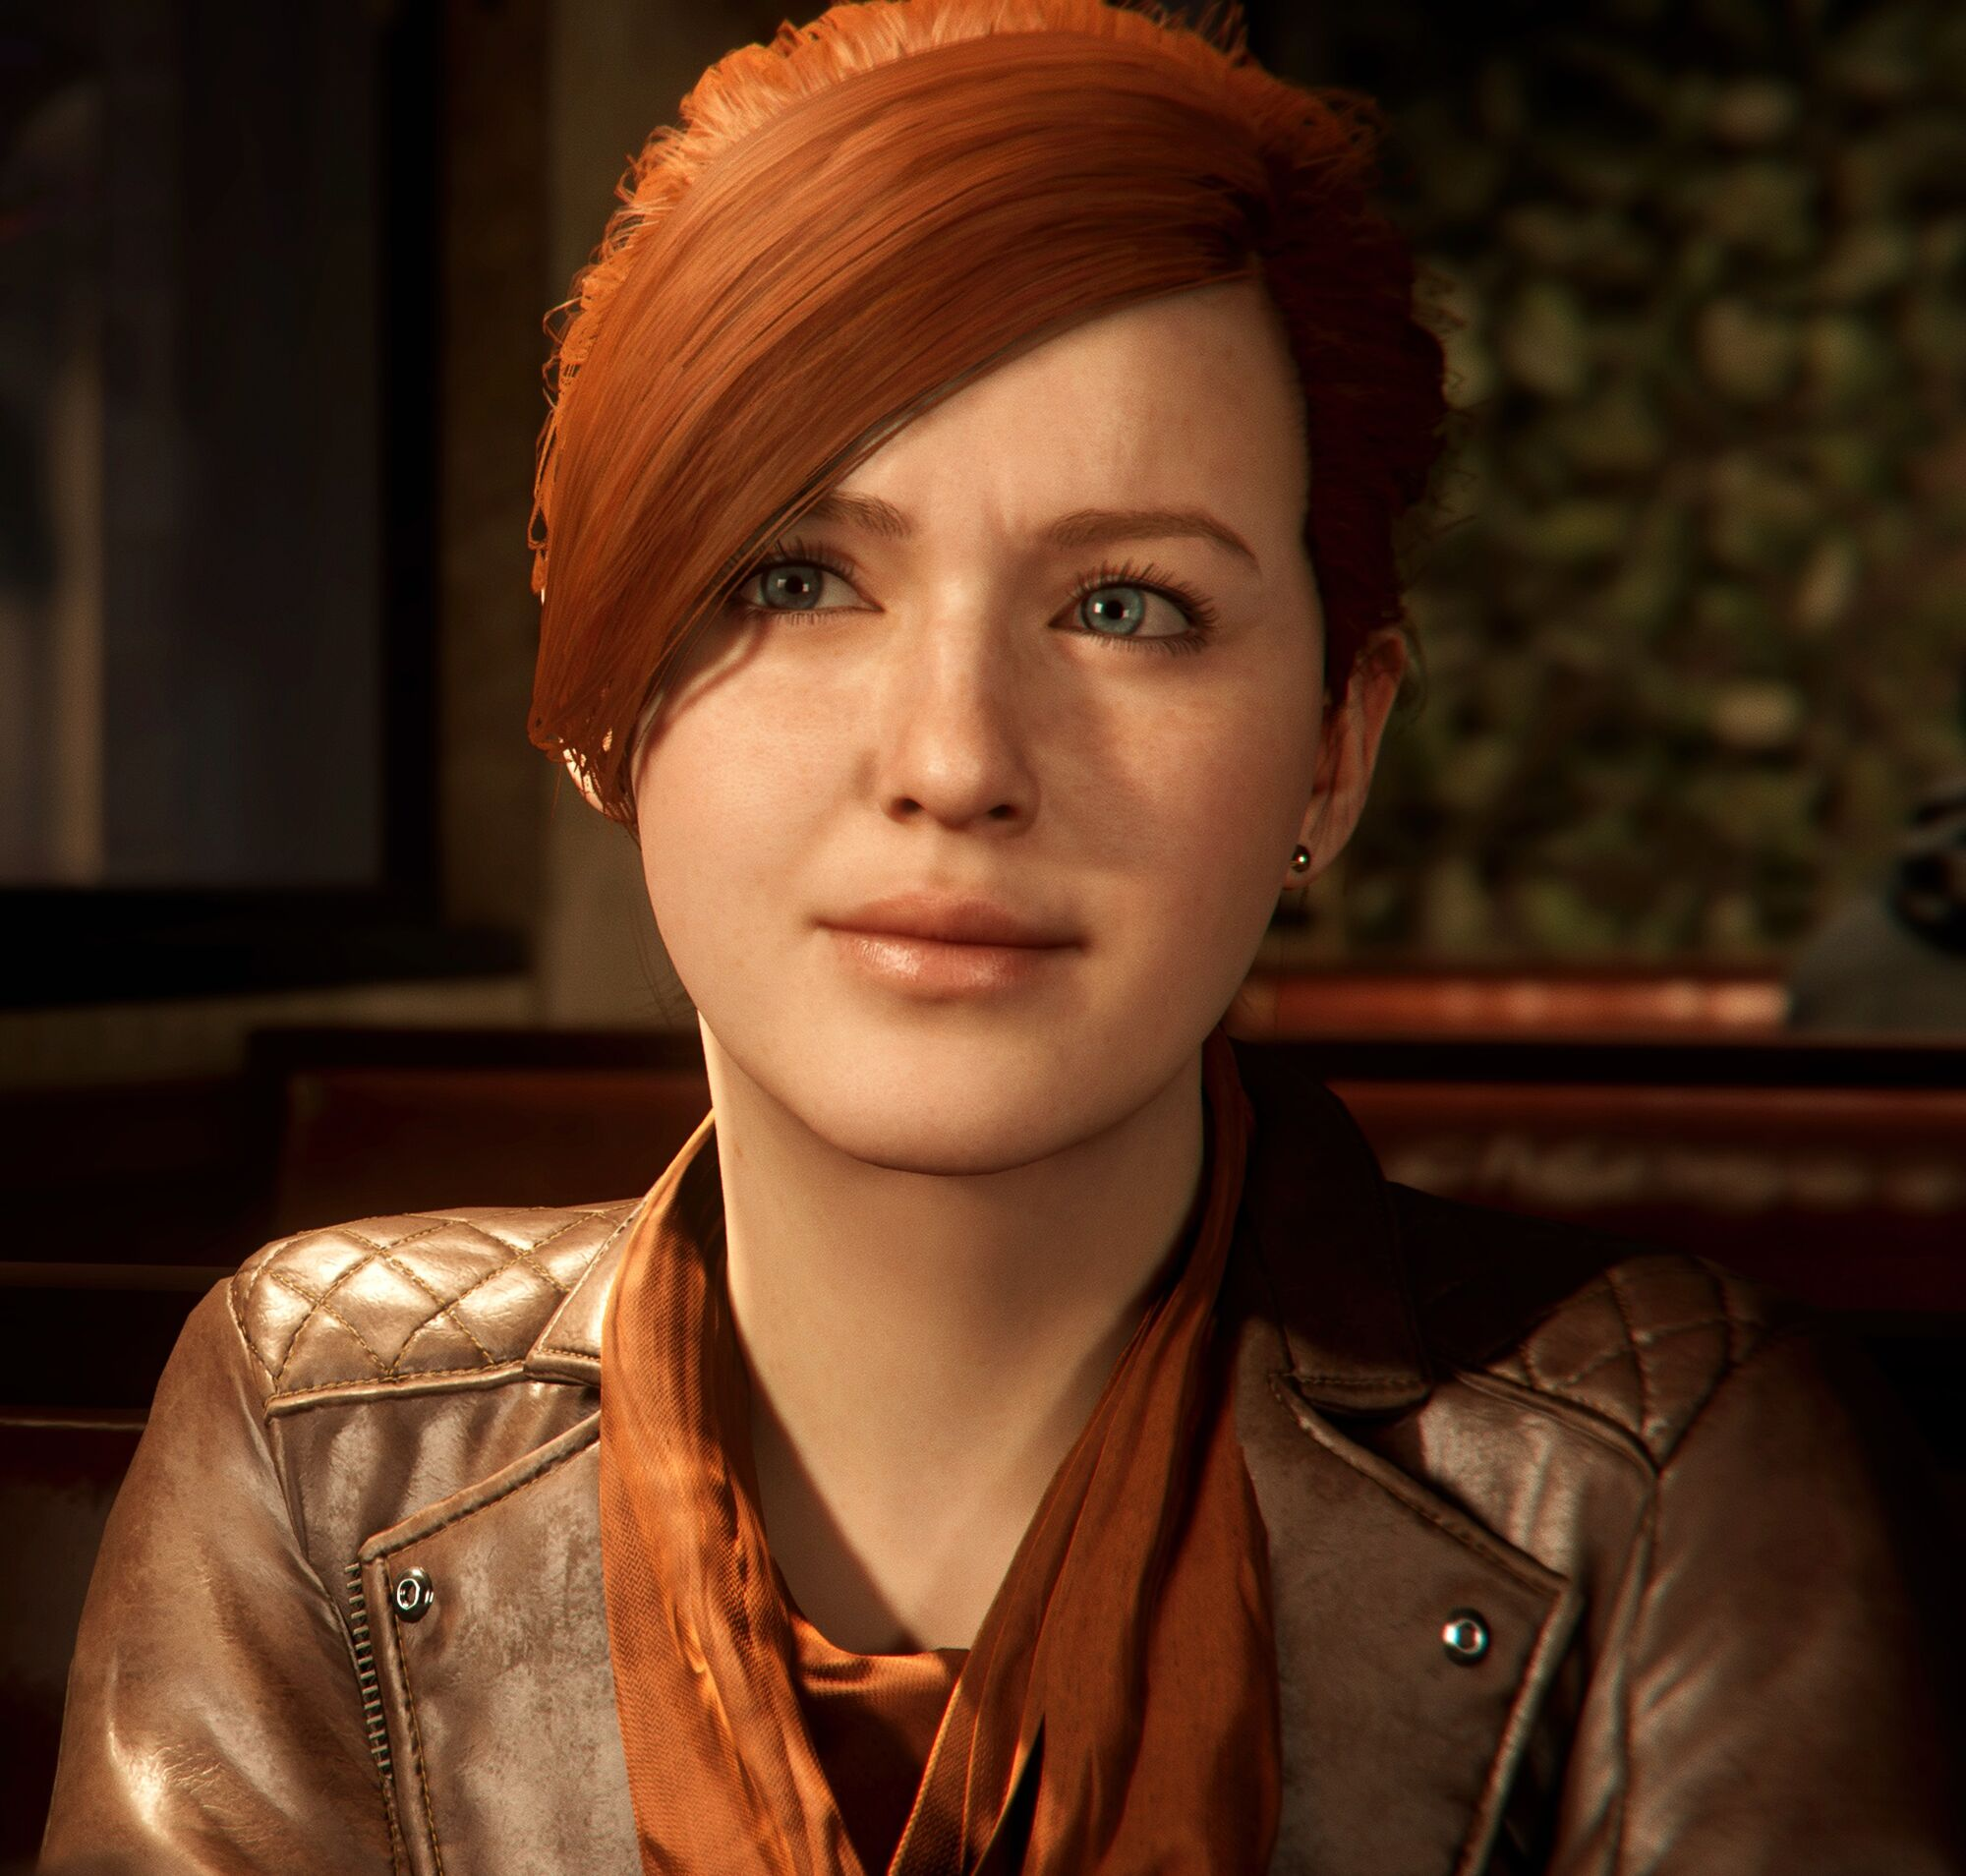 https://vignette.wikia.nocookie.net/spidermanps4/images/e/e0/Mary_Jane_Watson_from_MSM_screen.jpg/revision/latest/scale-to-width-down/2000?cb=20180913205417